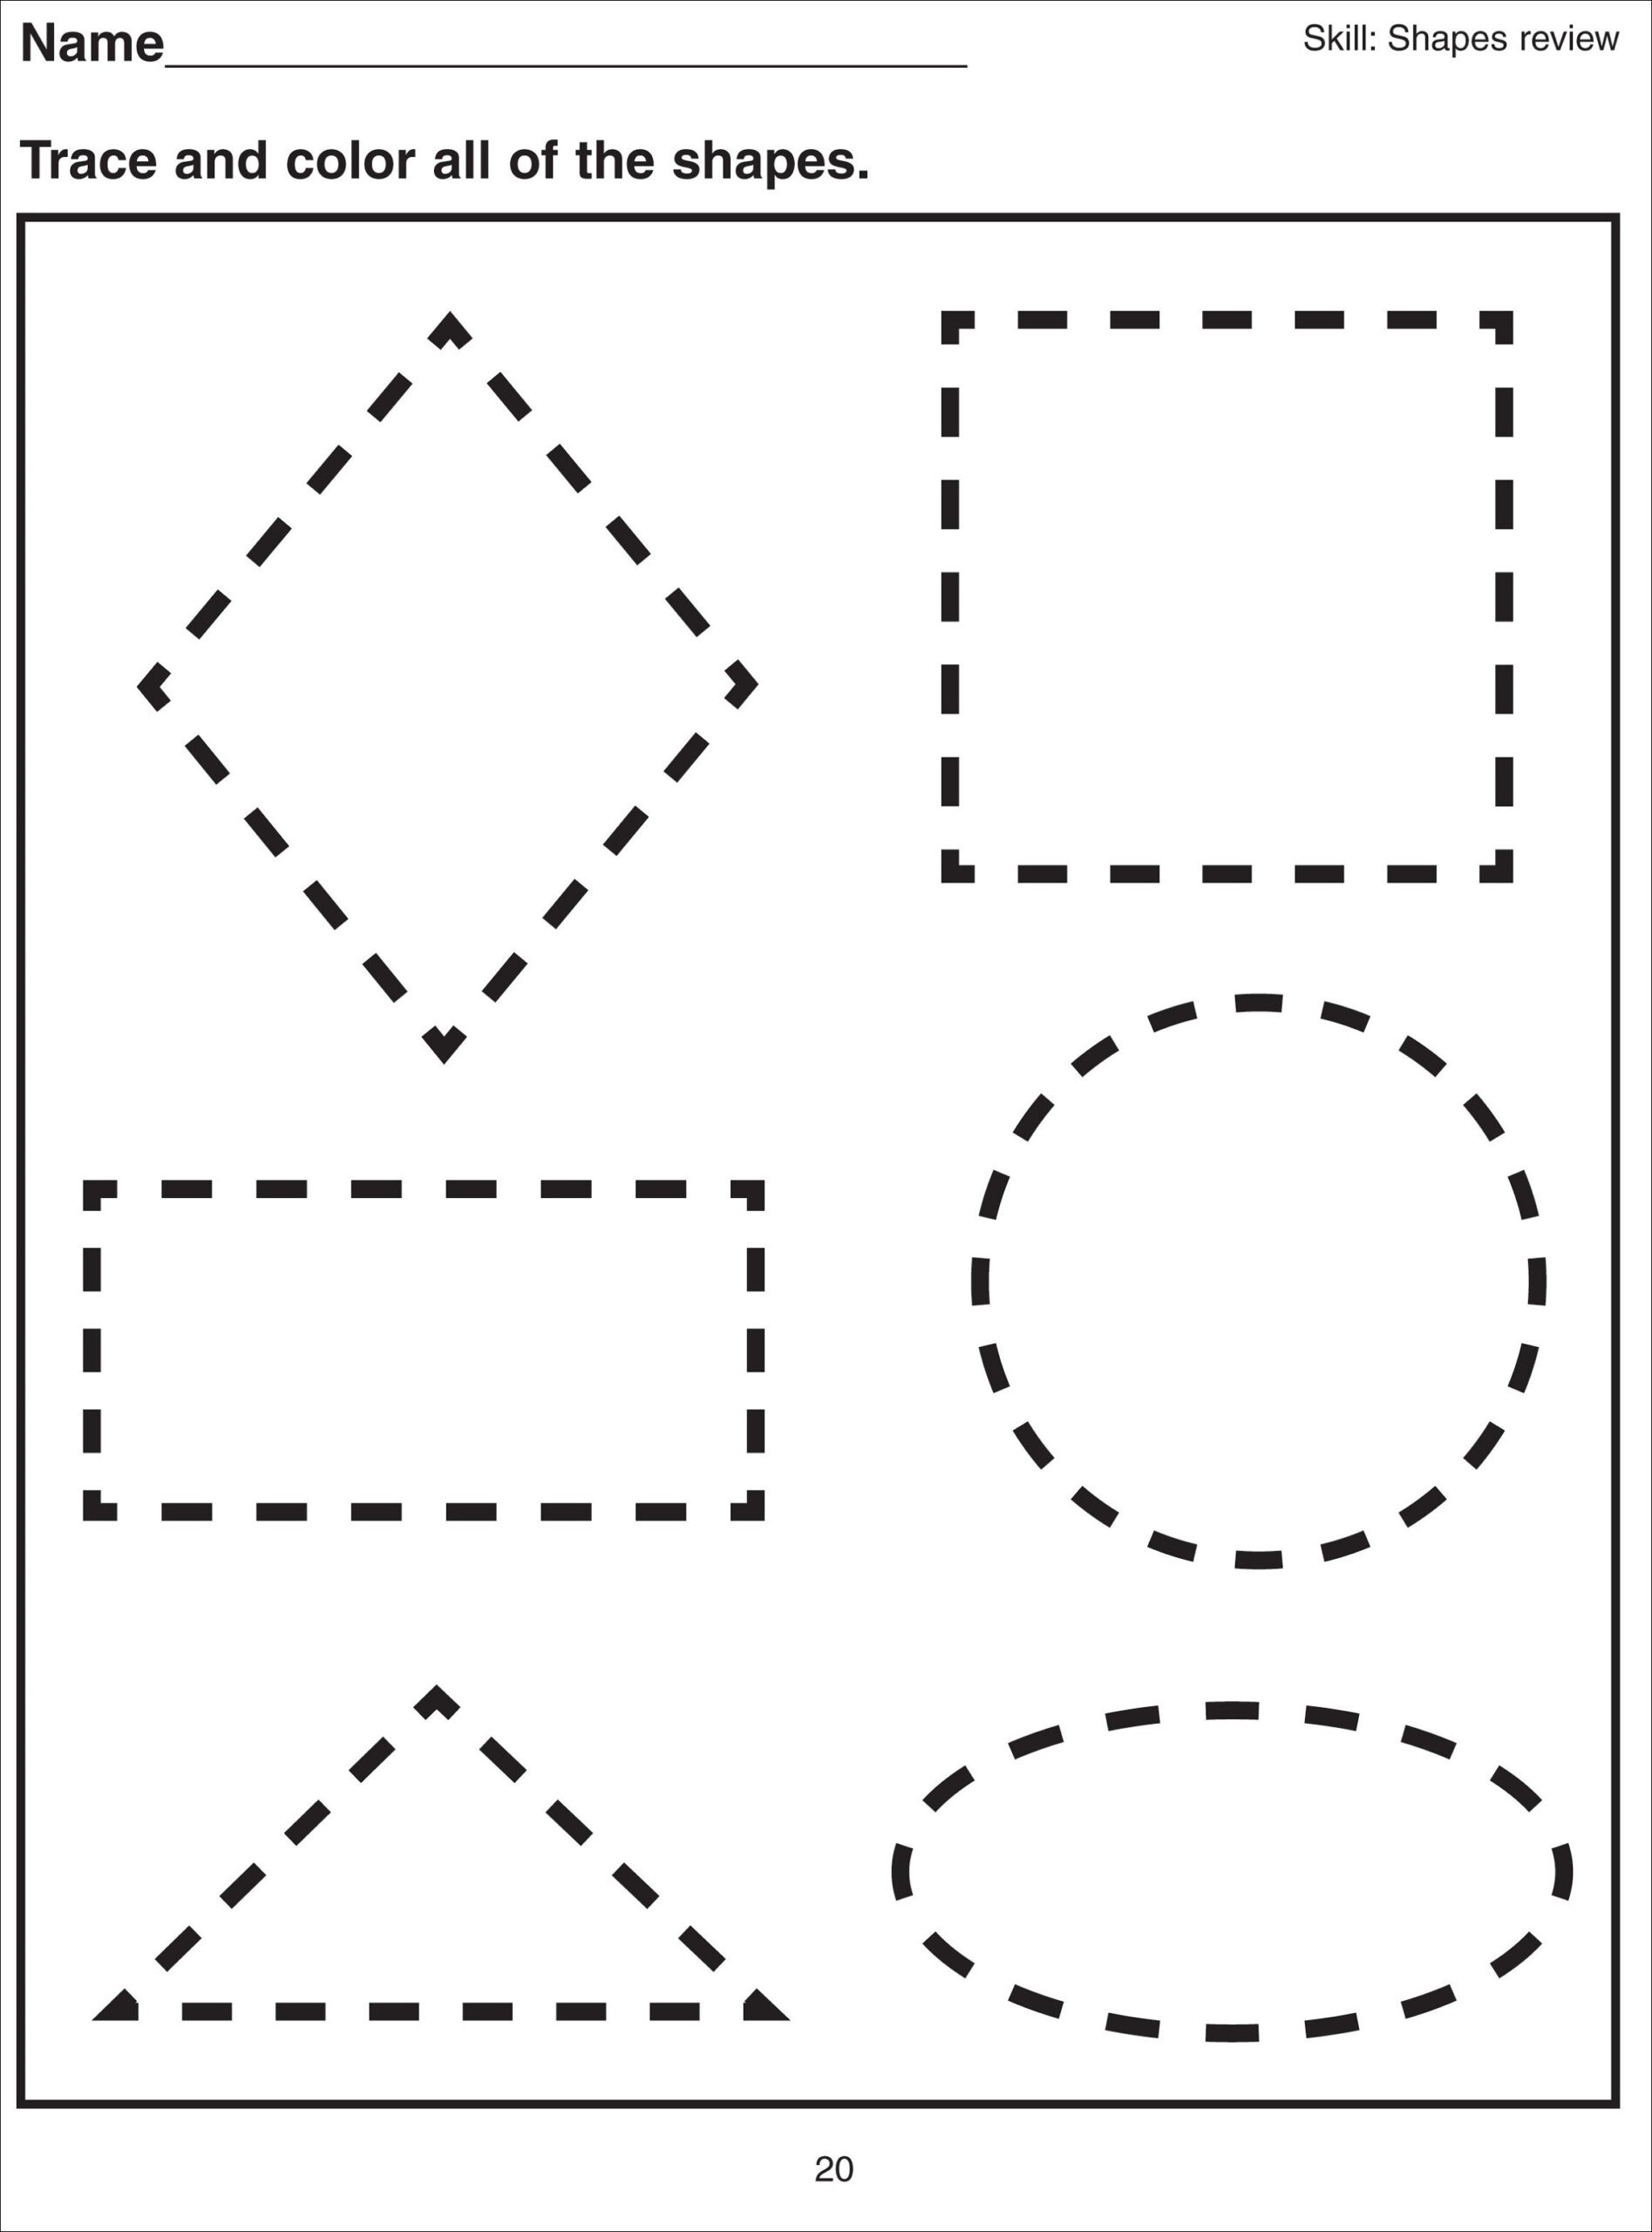 Polygon Worksheets 3rd Grade Shape Tracing Worksheets for Print Free Multiplication Table